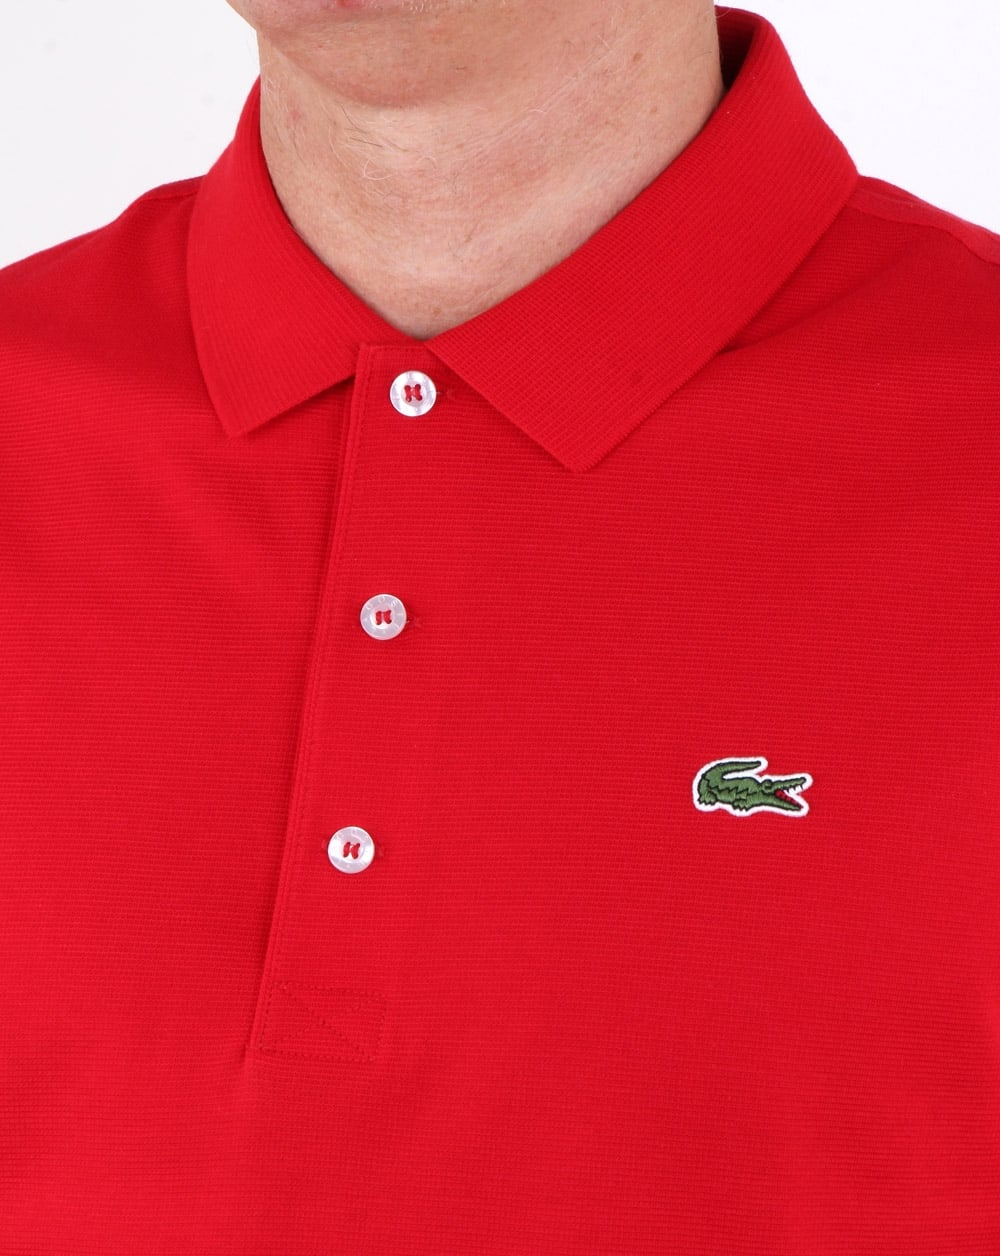 191f06cd Lacoste Polo Shirt Red